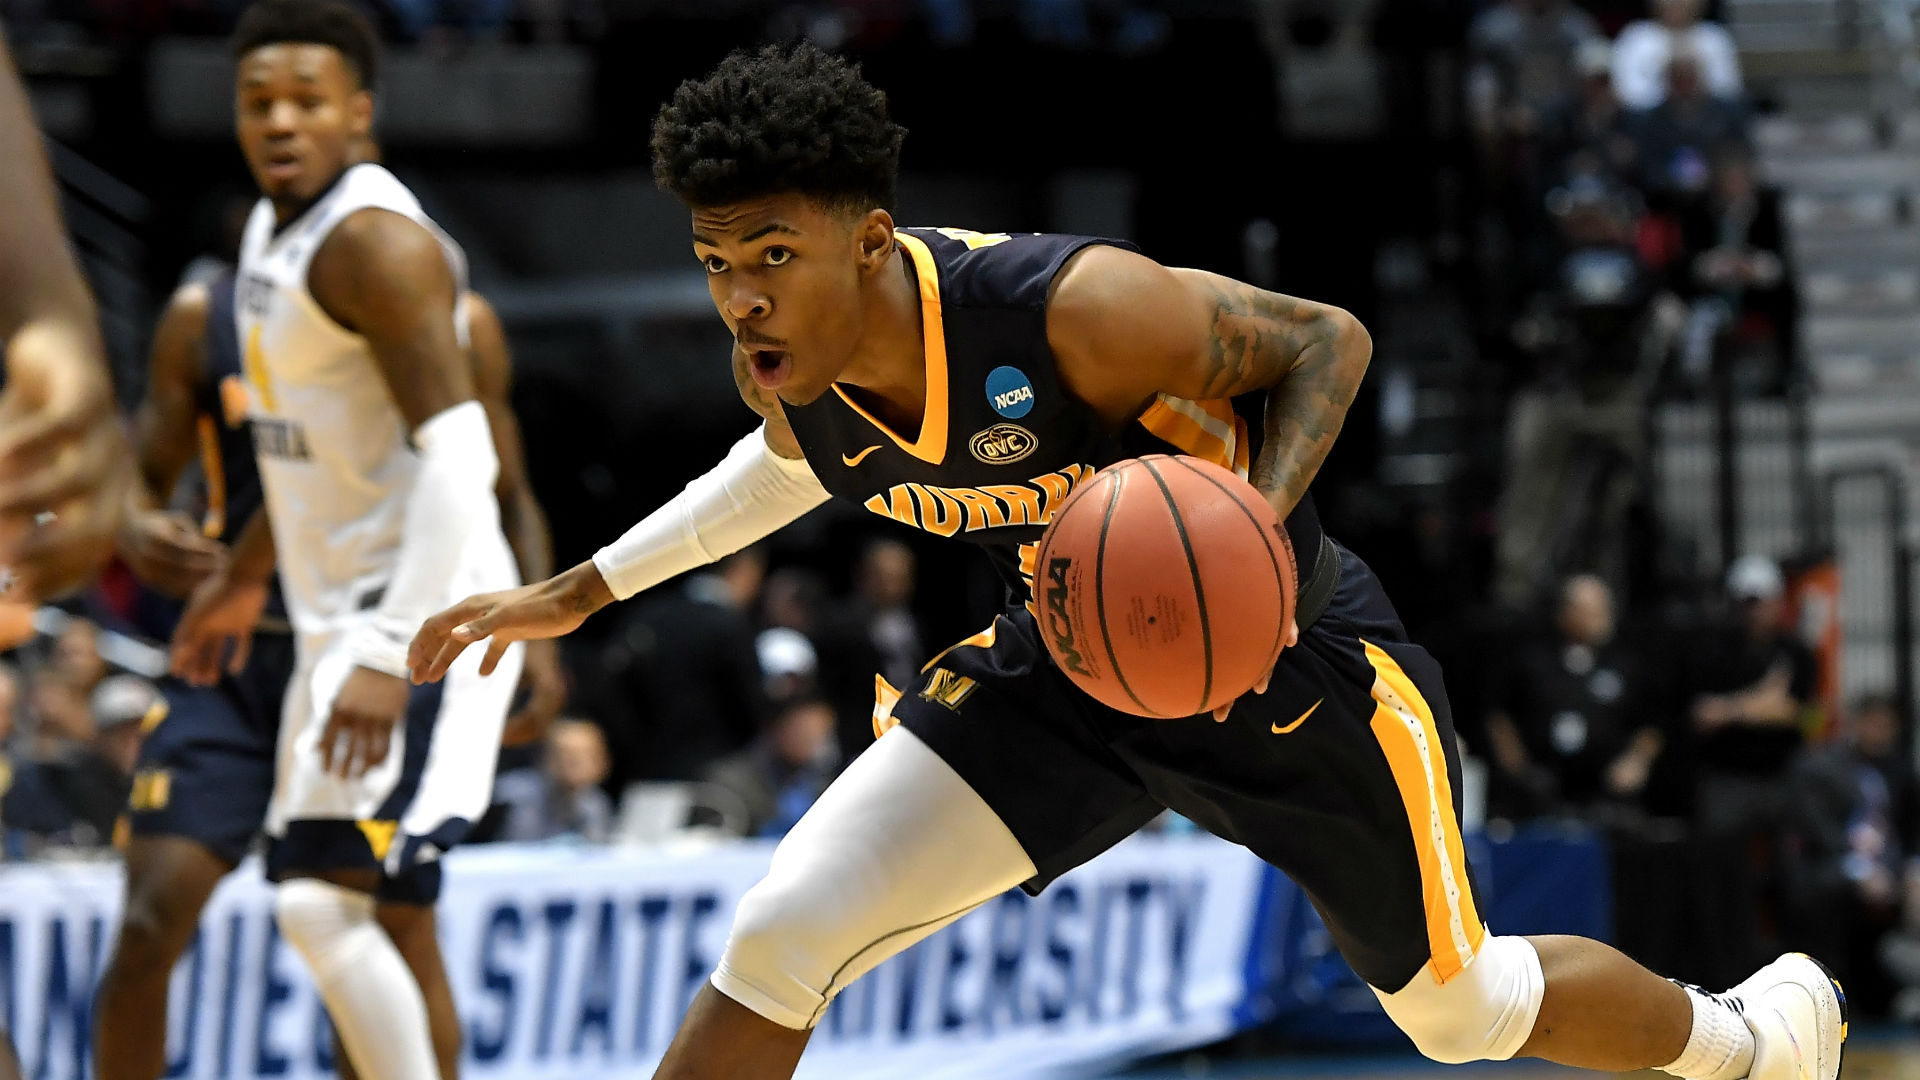 March Madness Top 10 Mid Major Players In The 2019 Ncaa: March Madness 2019: 10 Players Who Could Break Out